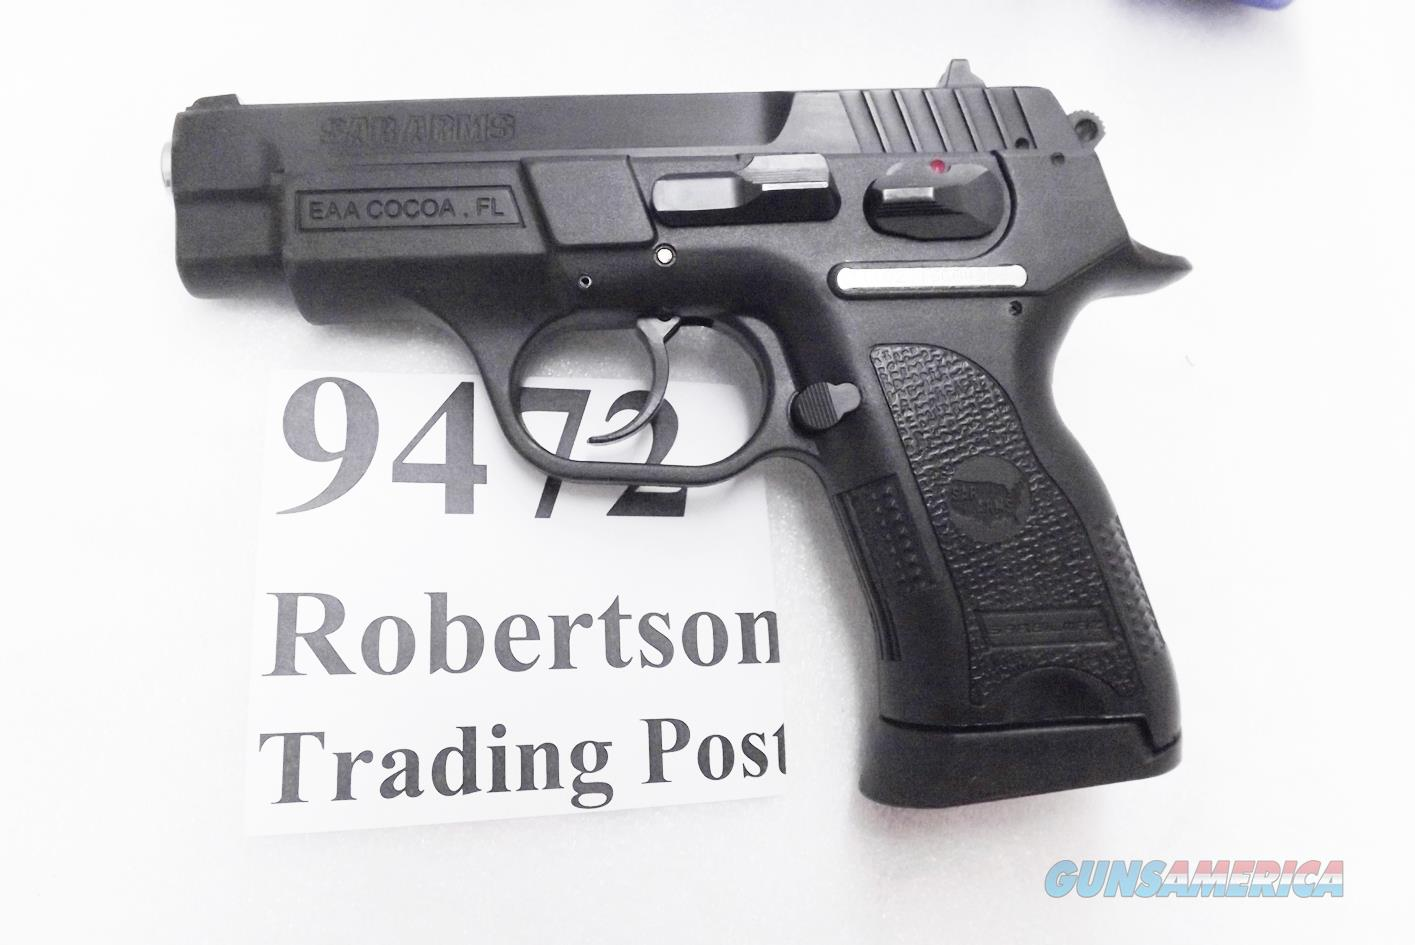 CZ75 P01 Clone SAR Arms EAA 9mm model SARB6P9 Compact 3 Dot Sights 14 shot 1 Magazine Commander Hammer 3 1/2 inch K2 K-2 CZ Mag Compatible 400424 Compatible with CZ75 and Baby Eagle Magazines   Guns > Pistols > EAA Pistols > Other